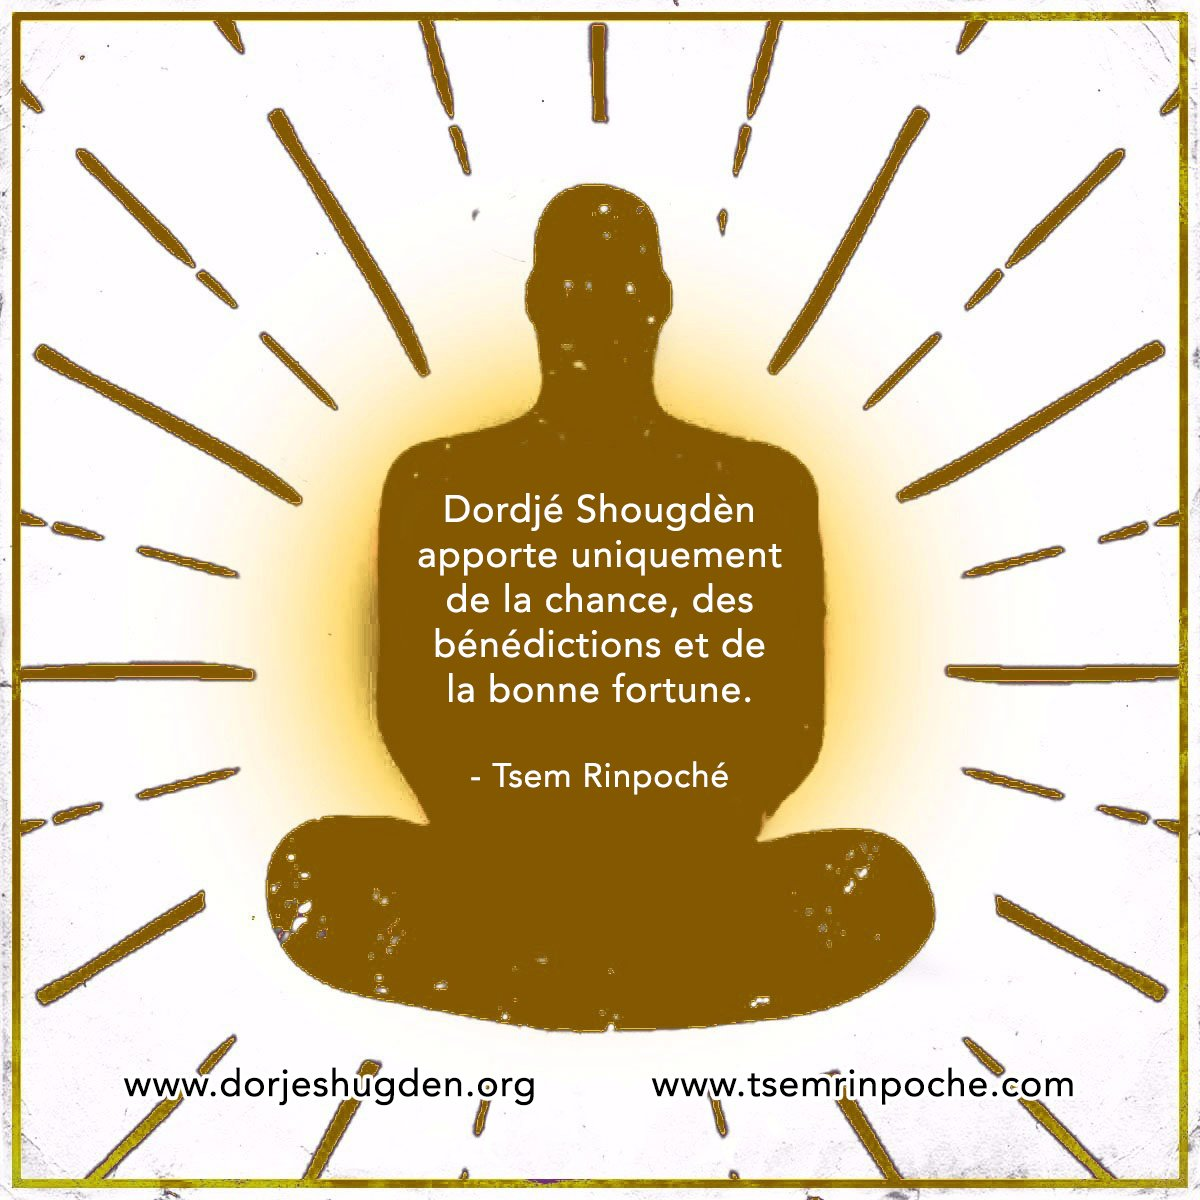 A special message for our #French friends http://bit.ly/2NhWE8V #Tibet #Tibetans #India #Buddha #Bombay #rangzen #Shugden #love #book #friends #Paris #spiritual #Mumbai #Dharamsala #mindfulness #France #Europe #charity #peaceofmind #friendship #hope #Friends #unity #harmony